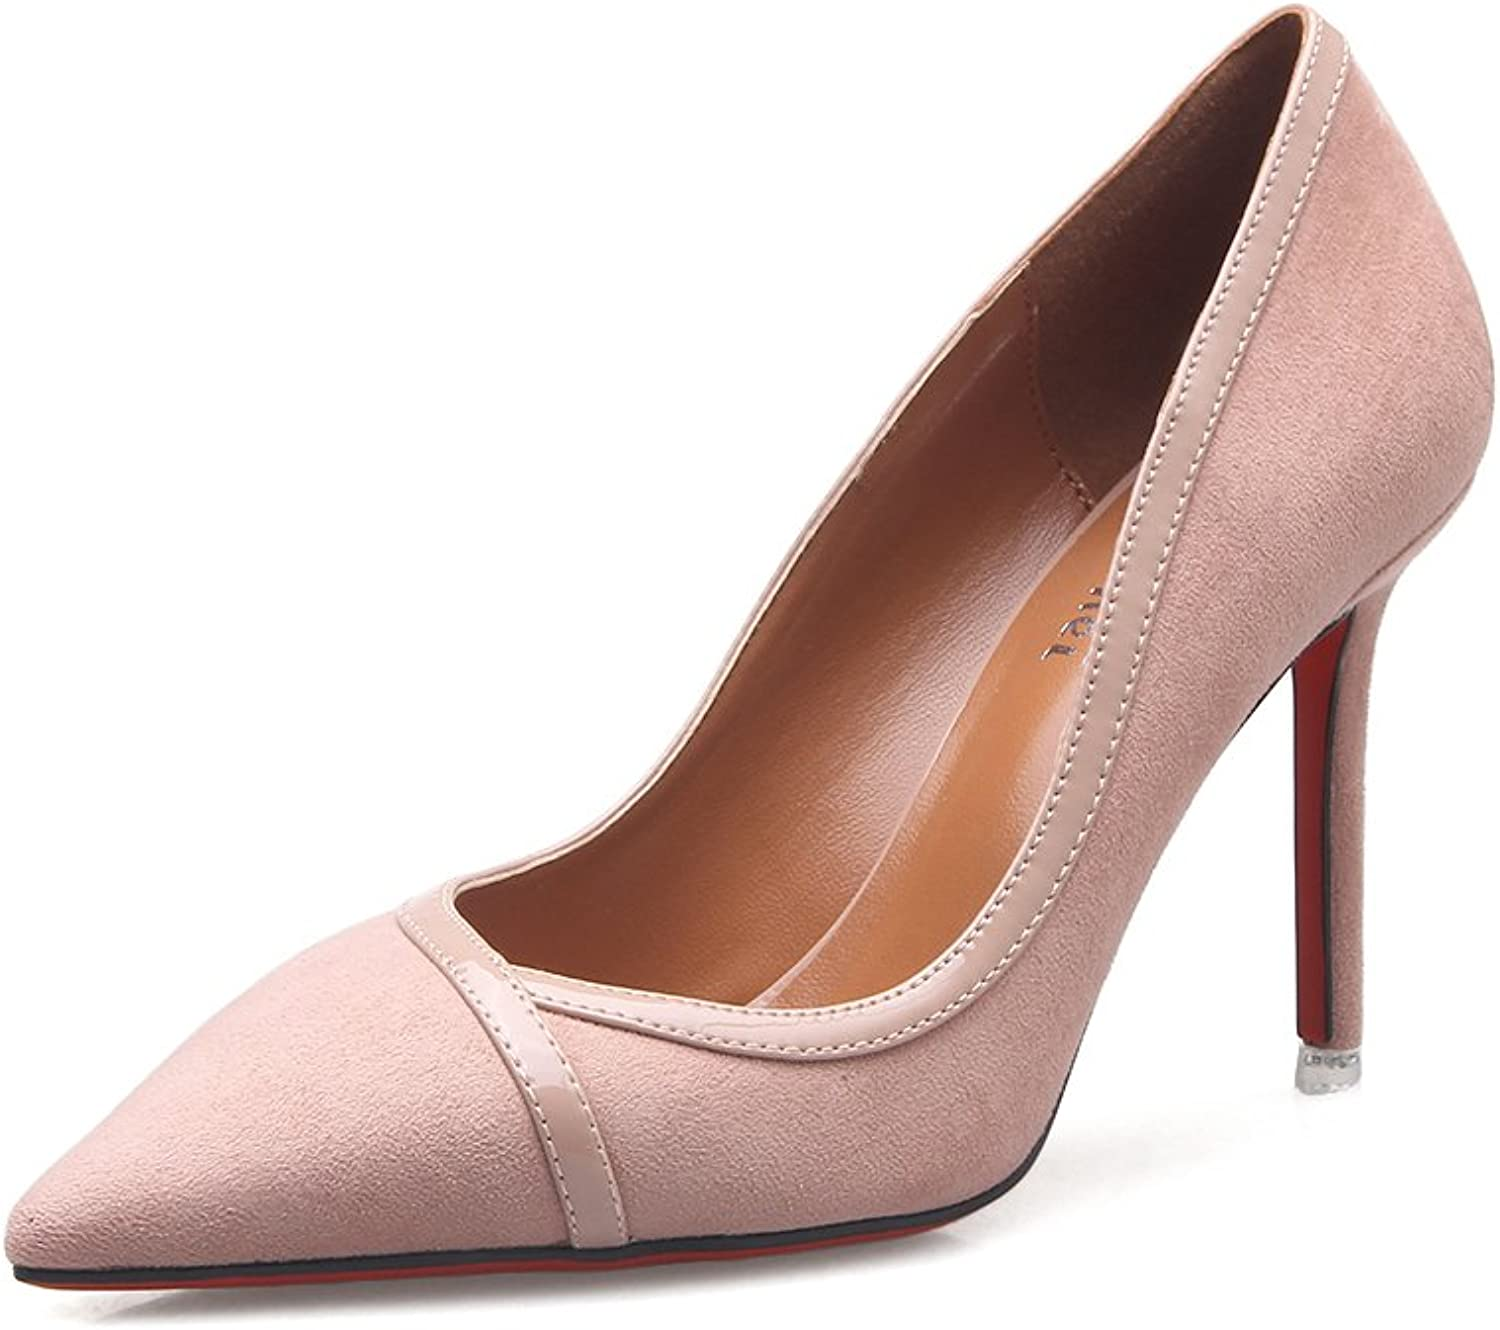 Women's shoes Patent Leather Spring Summer Fall Heels Stiletto Heel Pointed Toe for Casual Office & Career Dress Black, Camel, Bare Powder